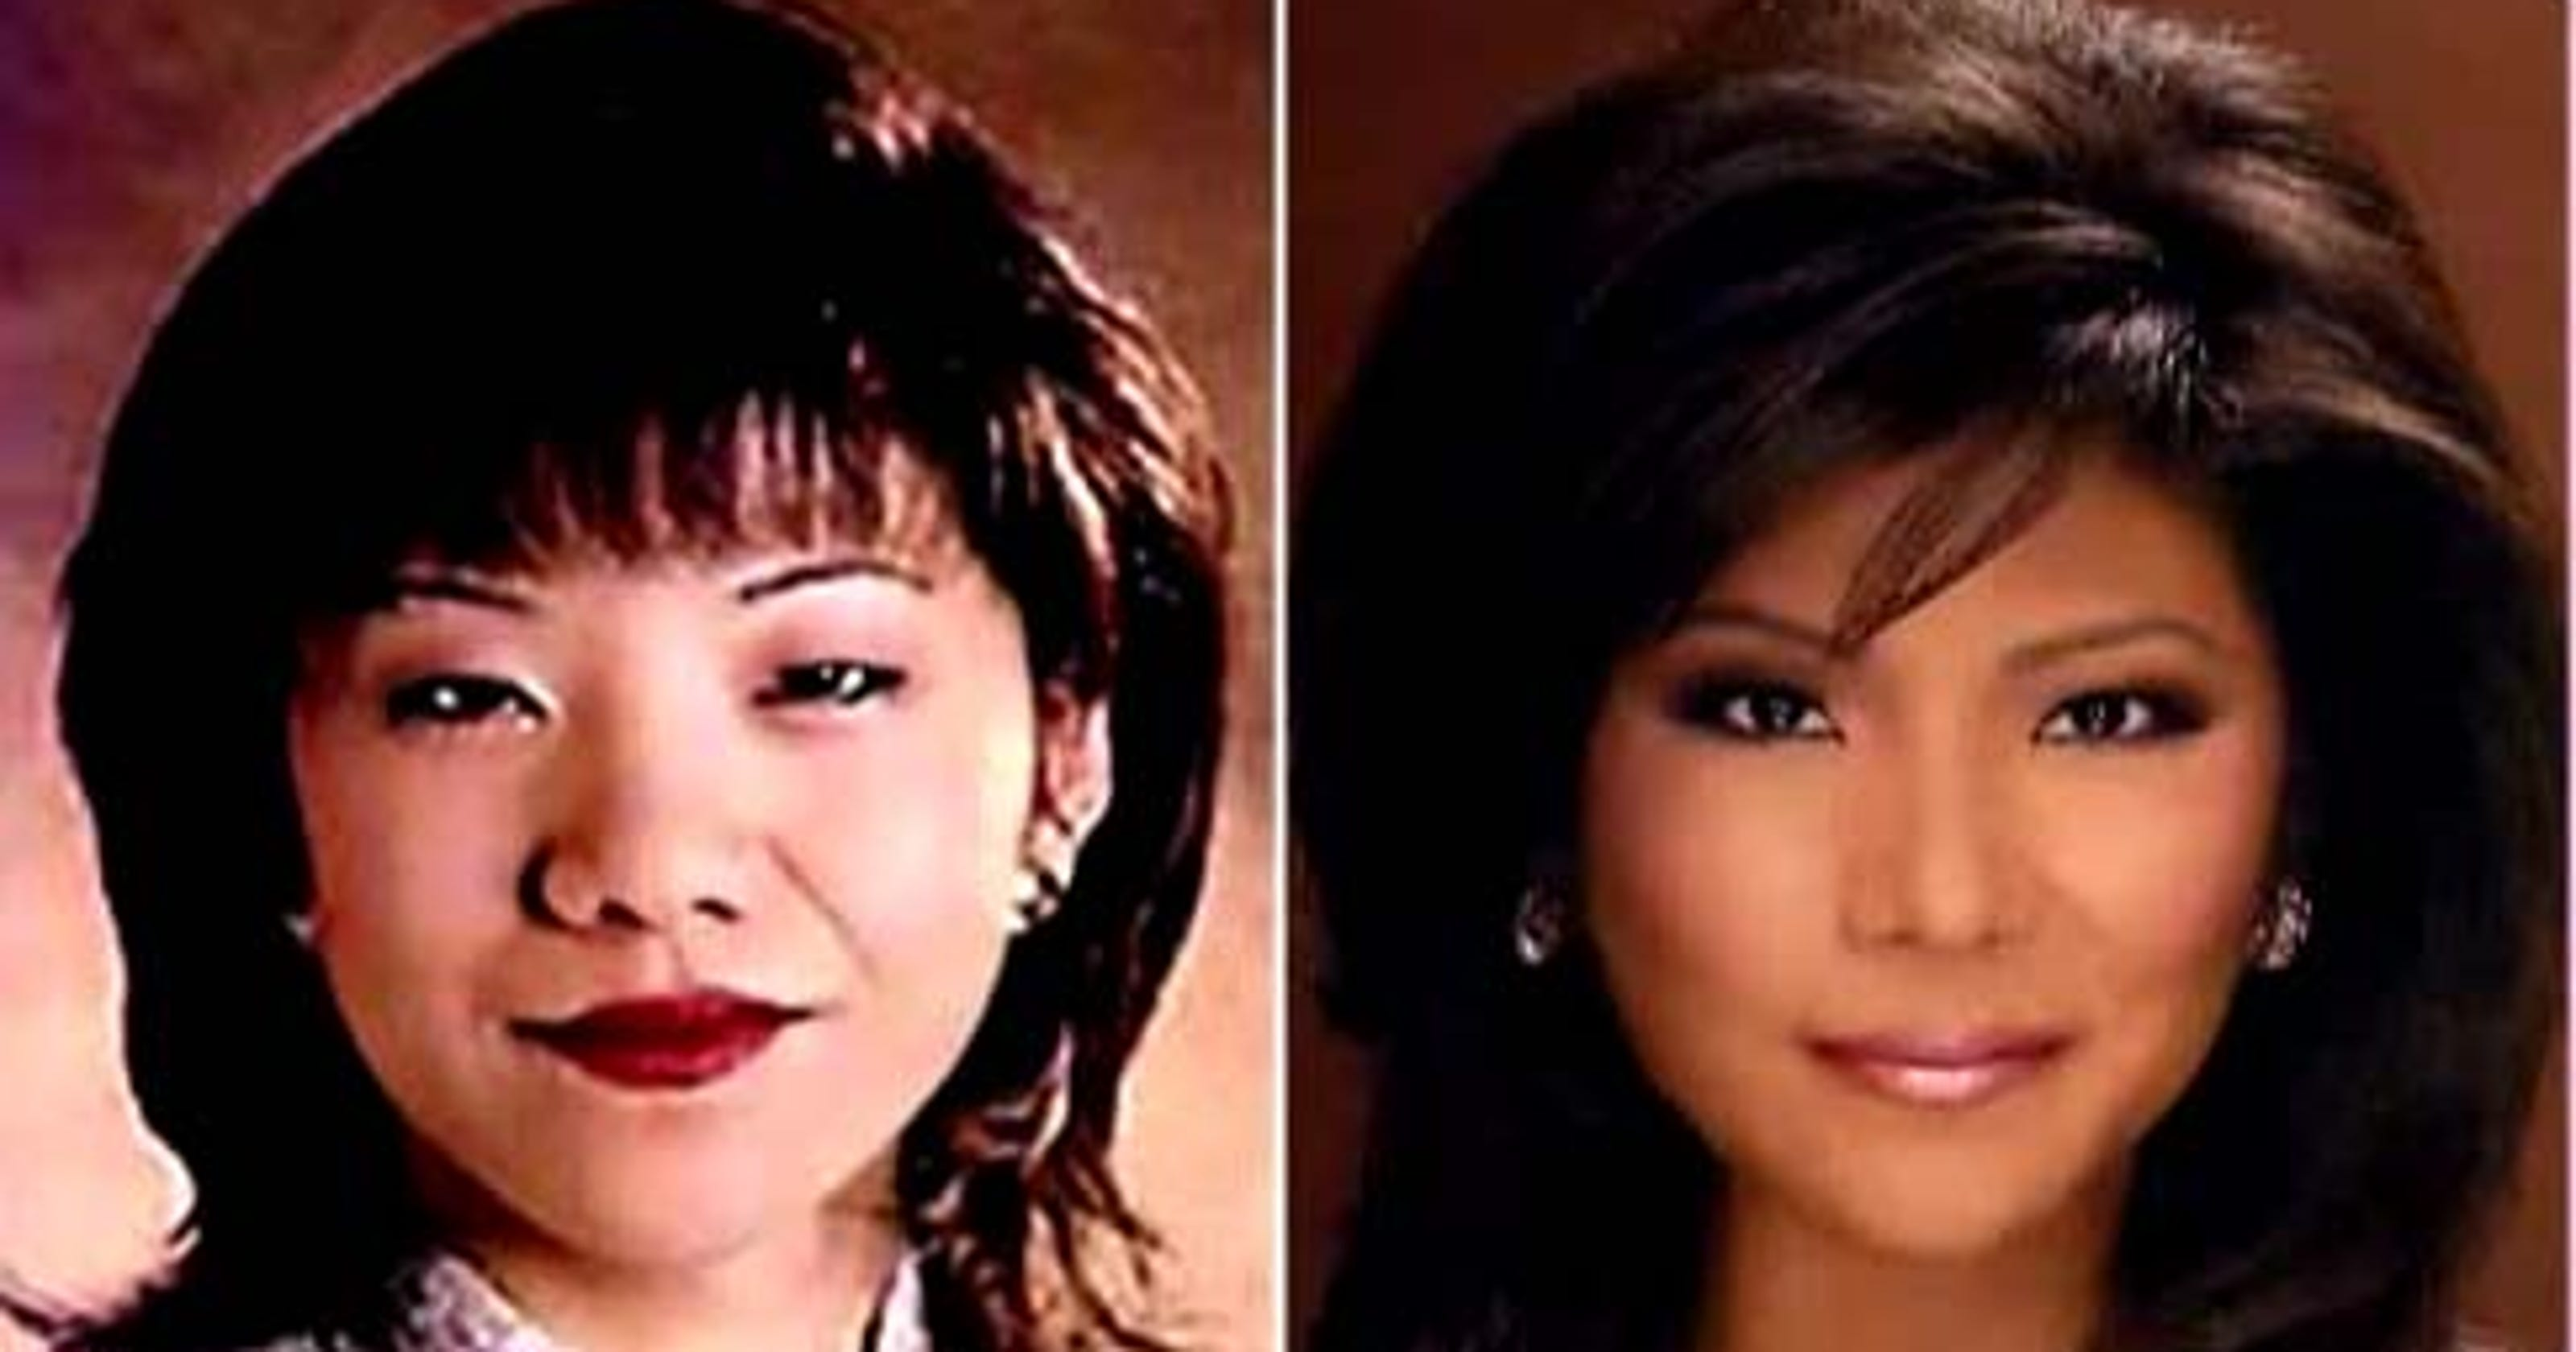 Julie Chen Had Plastic Surgery To Make Eyes Bigger